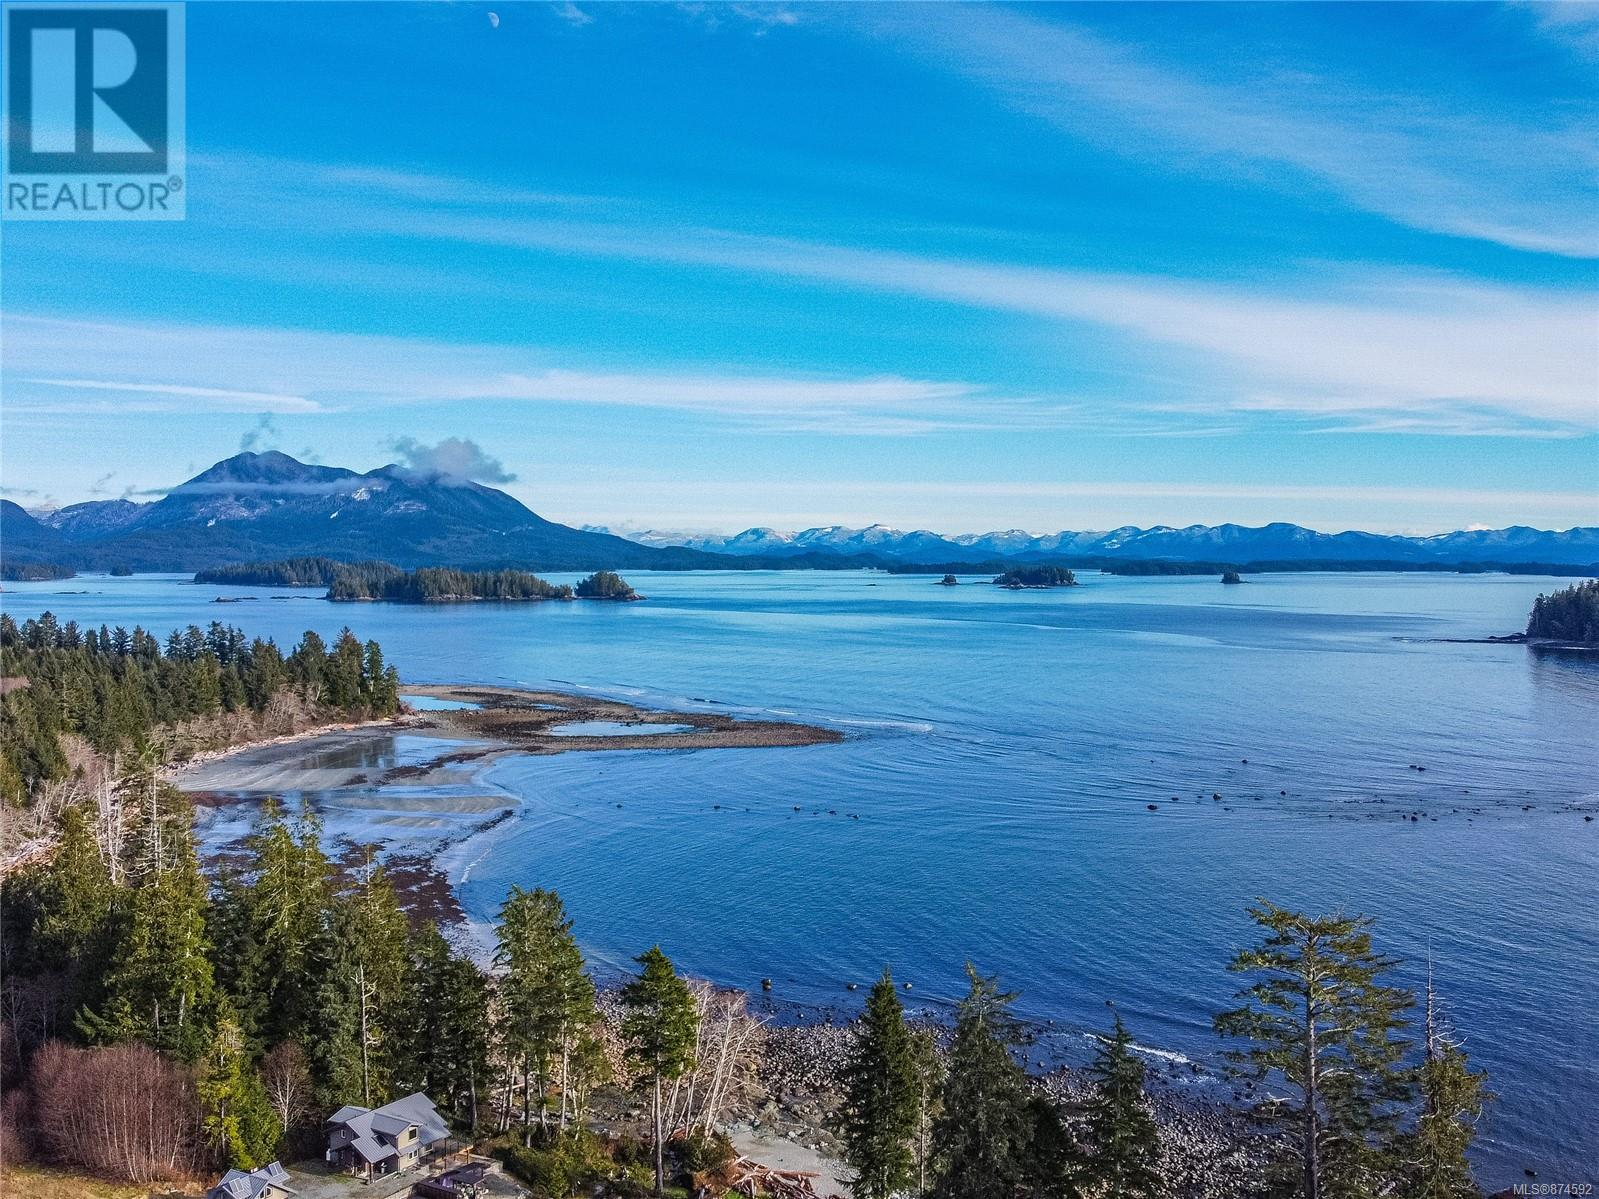 MLS® #874592 - Ucluelet House For sale Image #10